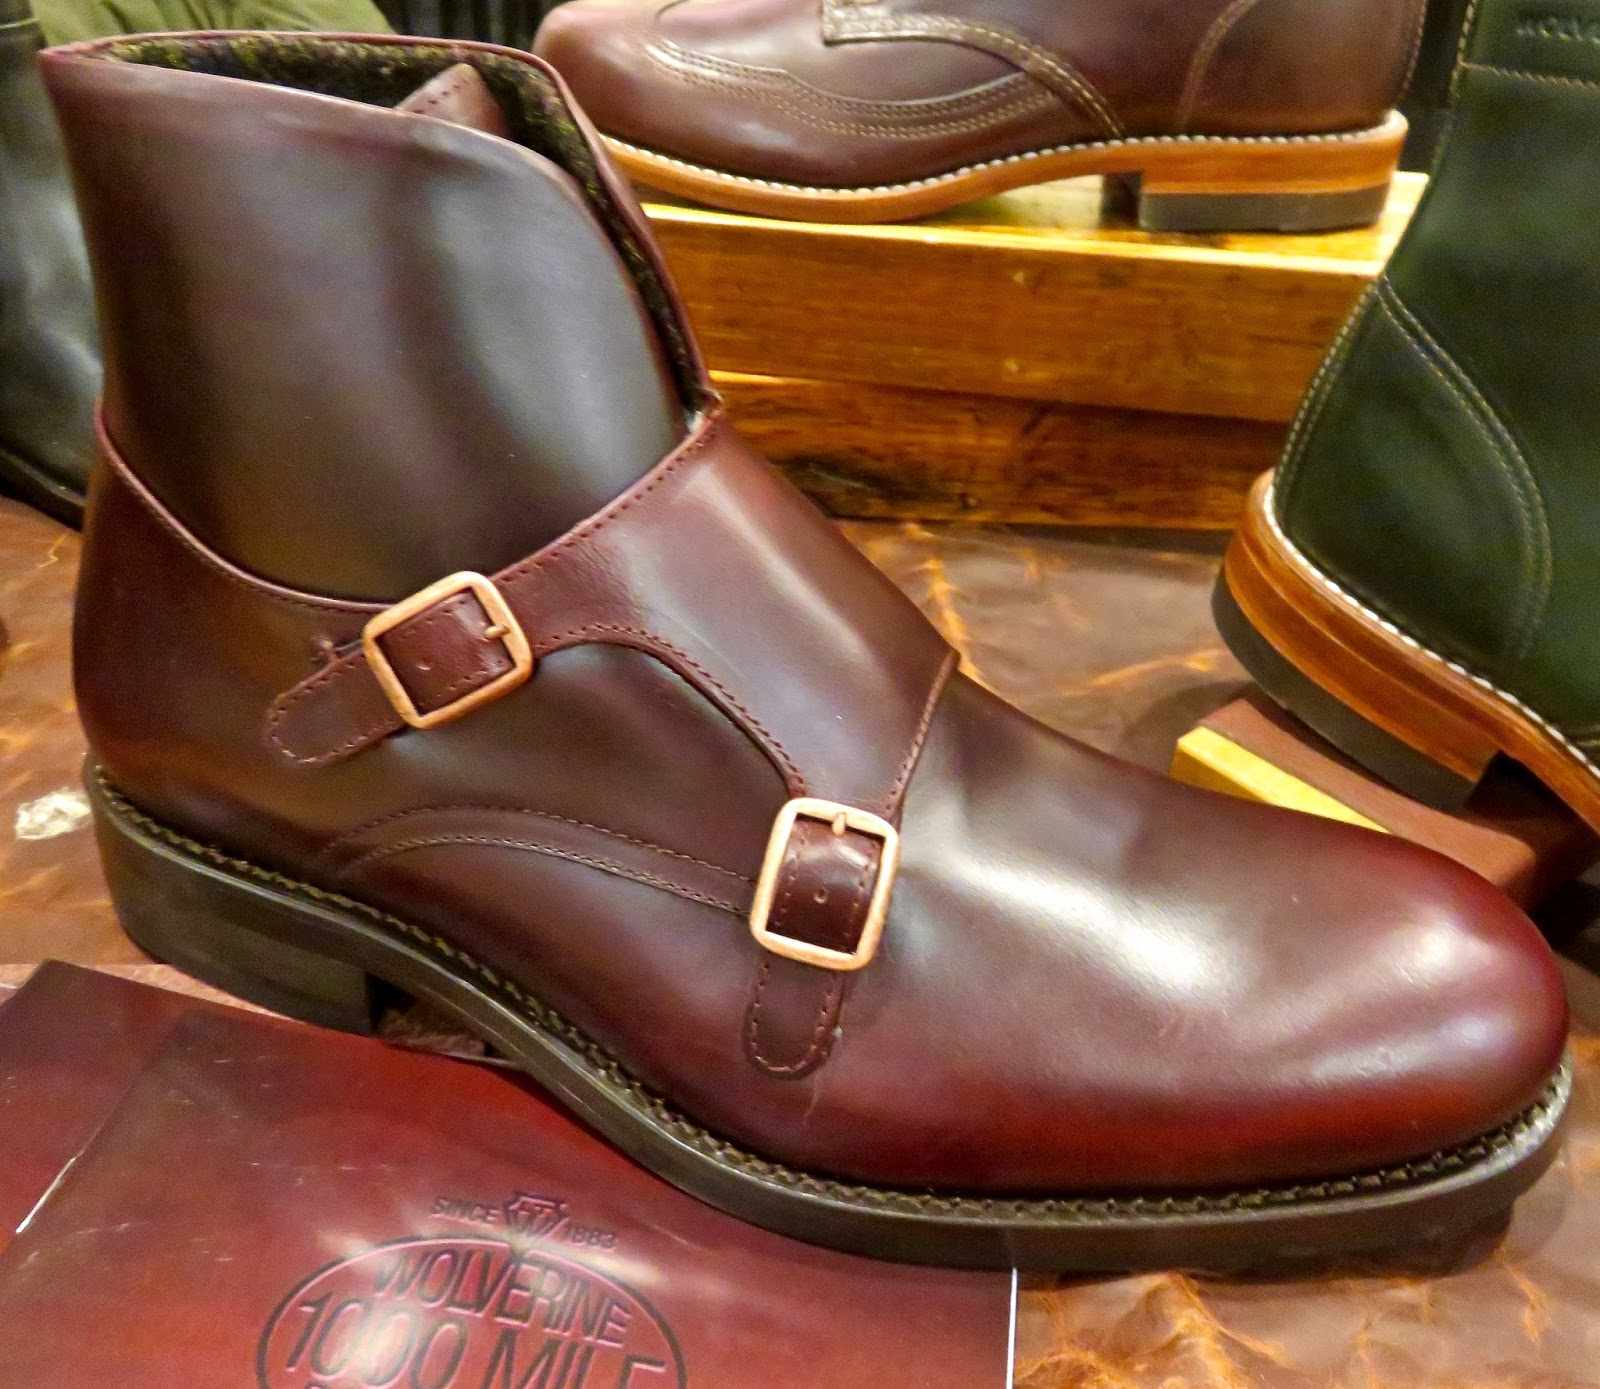 26035d85d5f WOLVERINE BOOTS-Fall Men's 1000 MILES/Rockford, MI Collection